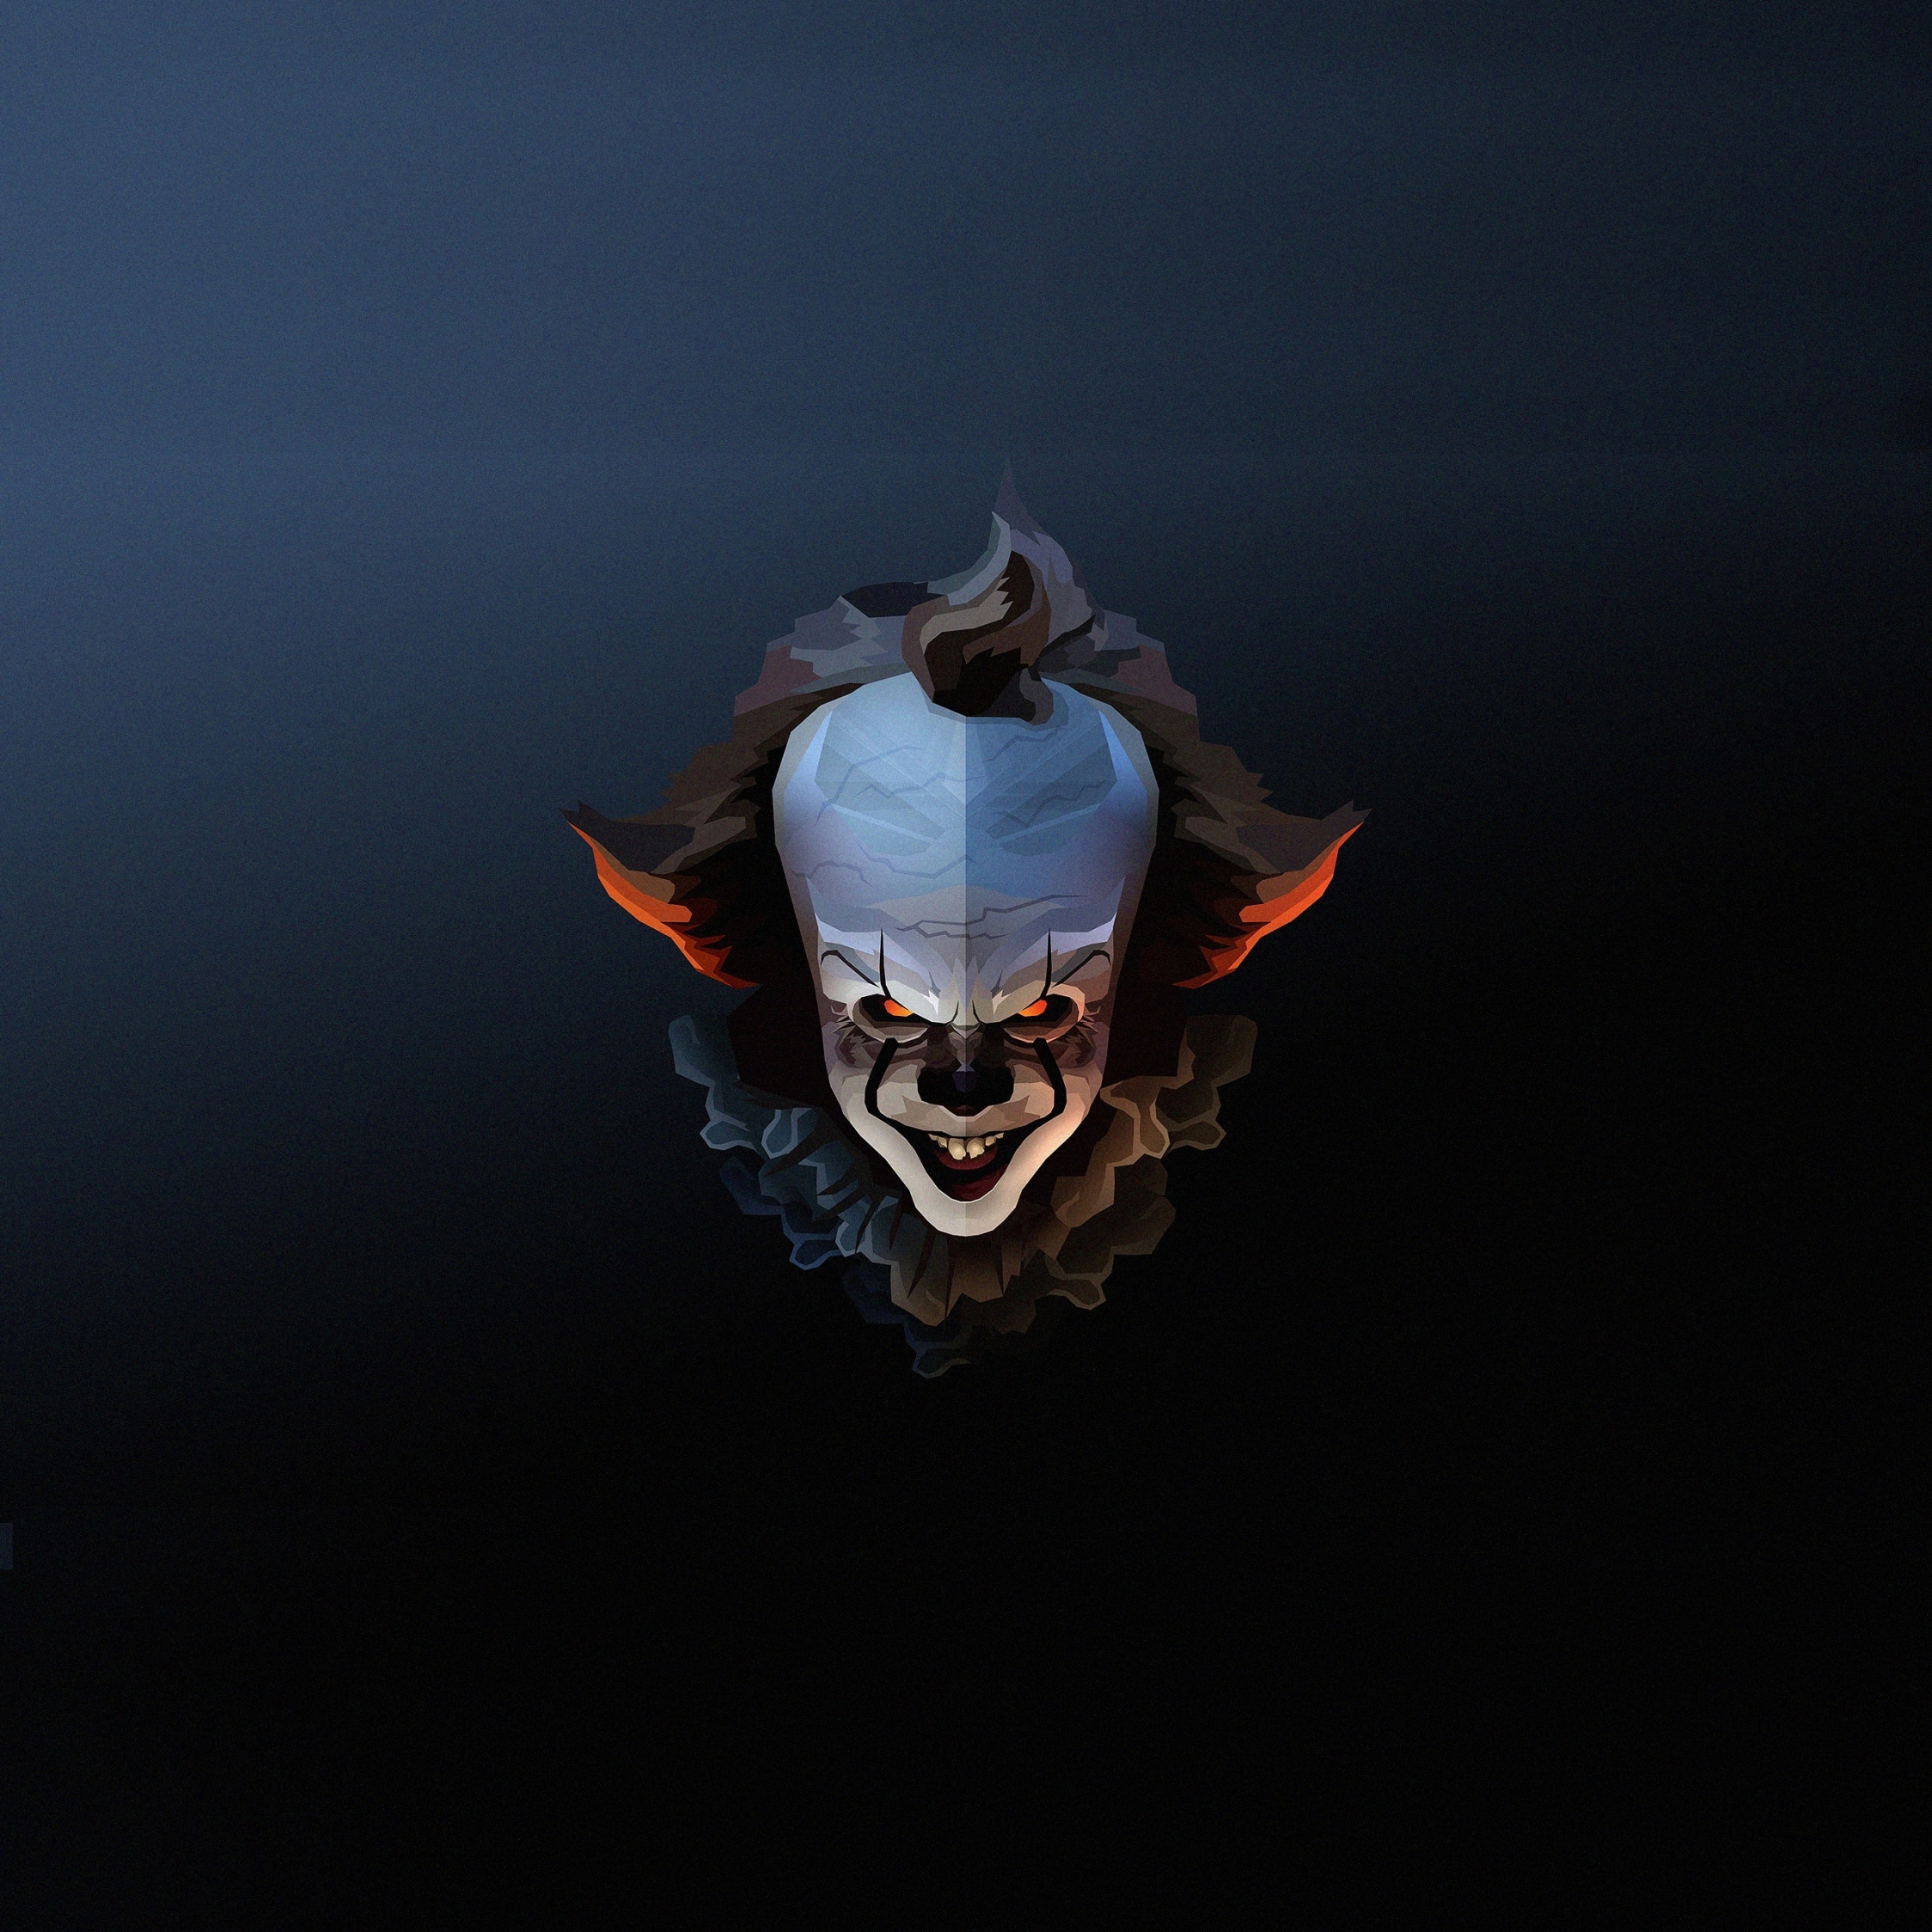 Download 2248x2248 Wallpaper Pennywise The Clown Halloween